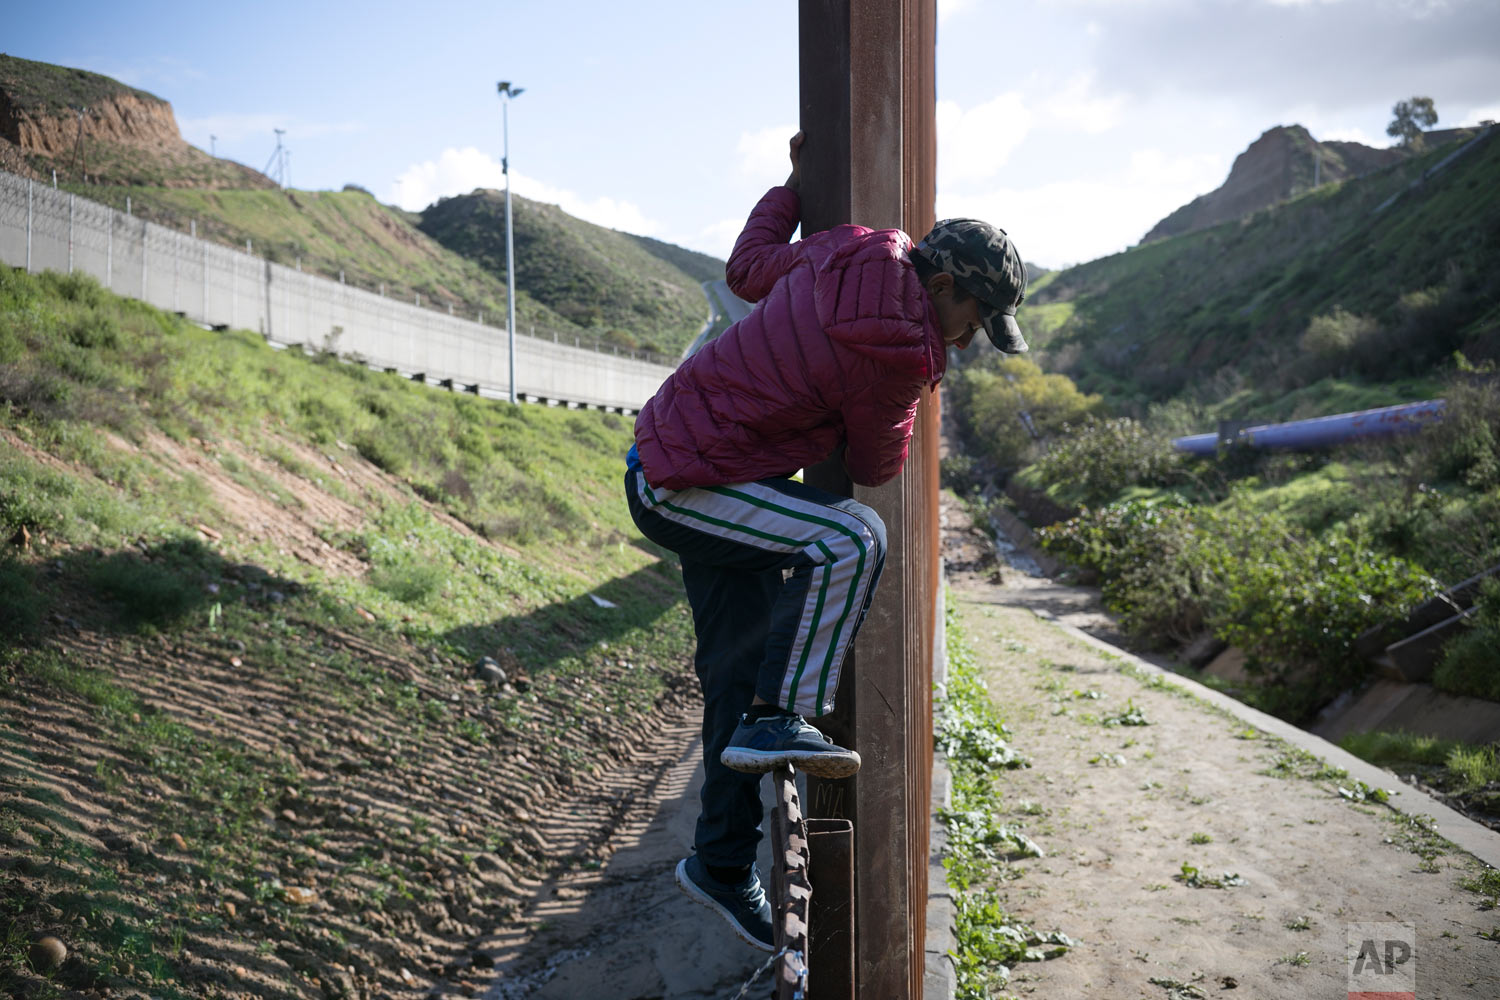 Teen Honduran migrant Josue Mejia Lucero climbs back over the U.S. border fence from San Diego to Tijuana, Mexico, after crossing it briefly to scout the area in an attempt to help his sister and her son reach the U.S. undetected from Tijuana, Mexico, Feb. 3, 2019. (AP Photo/Emilio Espejel)